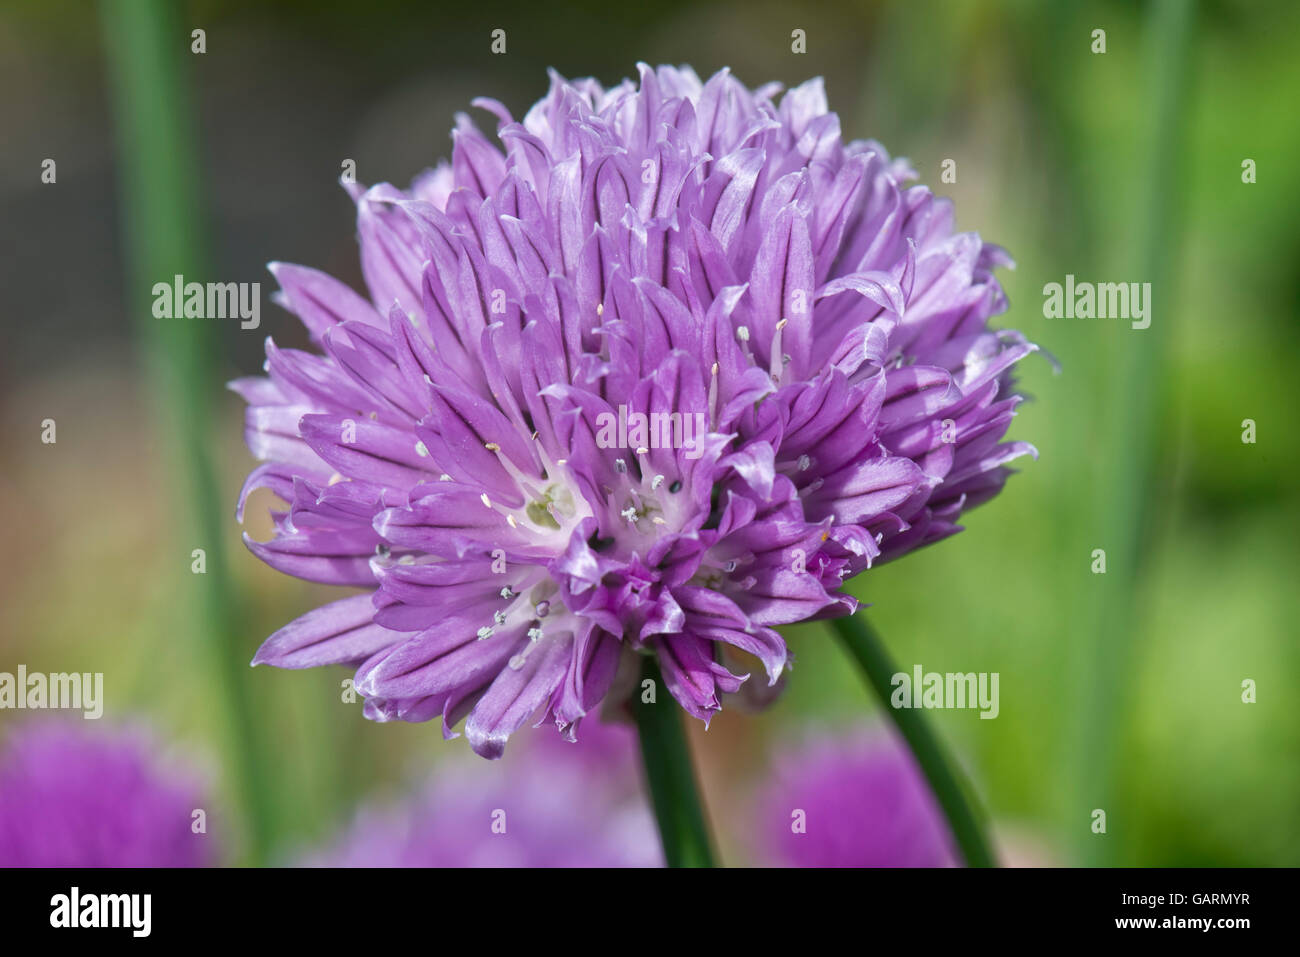 Lilac flower of chives, Allium schoenoprasum, a culinary herd in the onion family, May - Stock Image